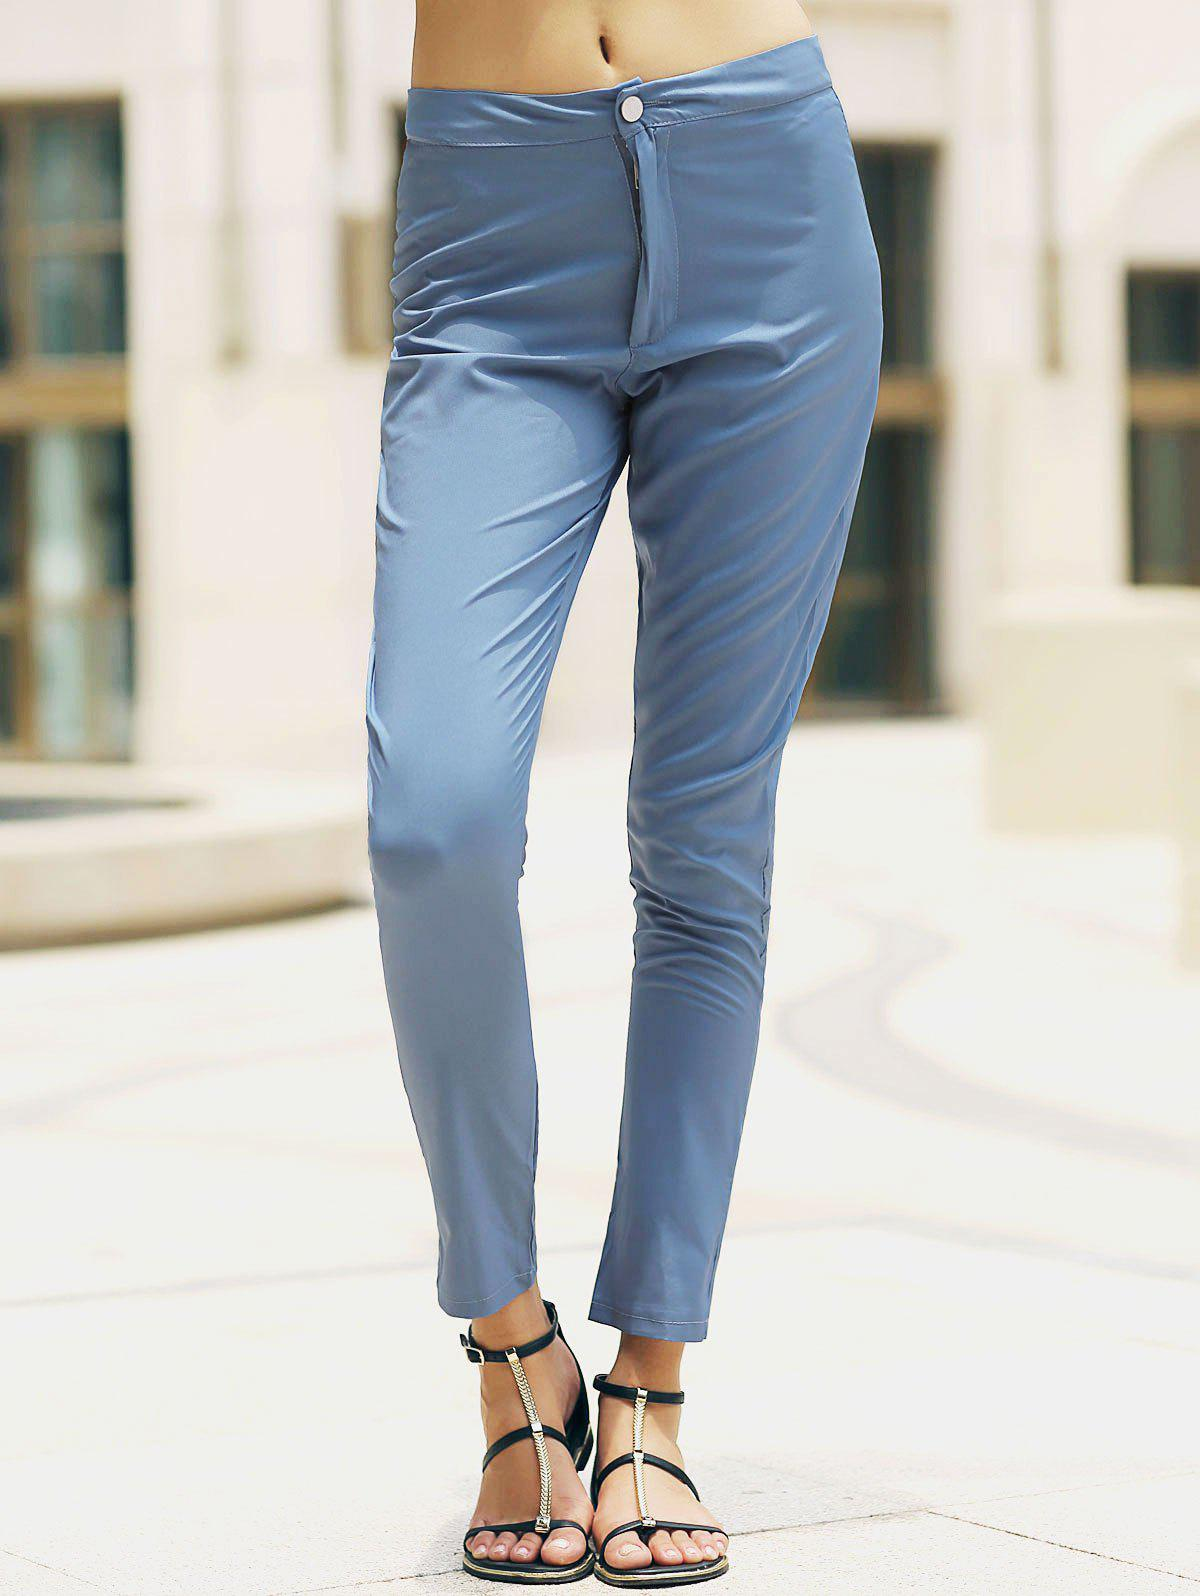 New Stylish High-Waisted Pocket Design Slimming Women's Pants